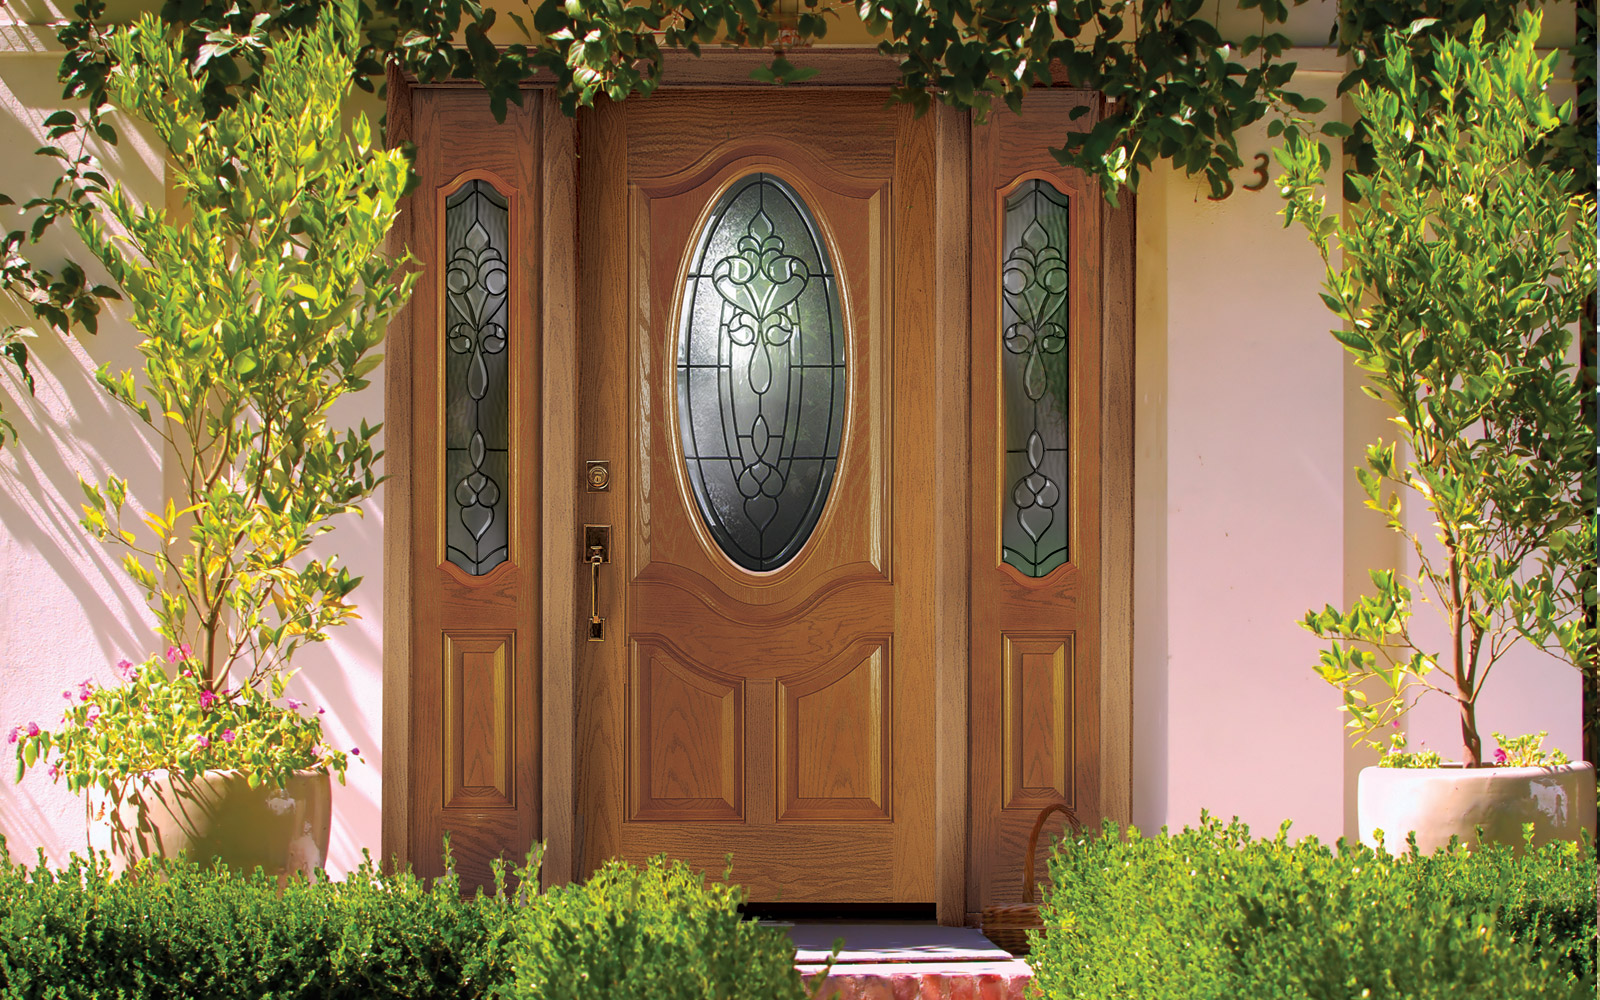 gallery--1600x1000--door-oval-glass.jpg